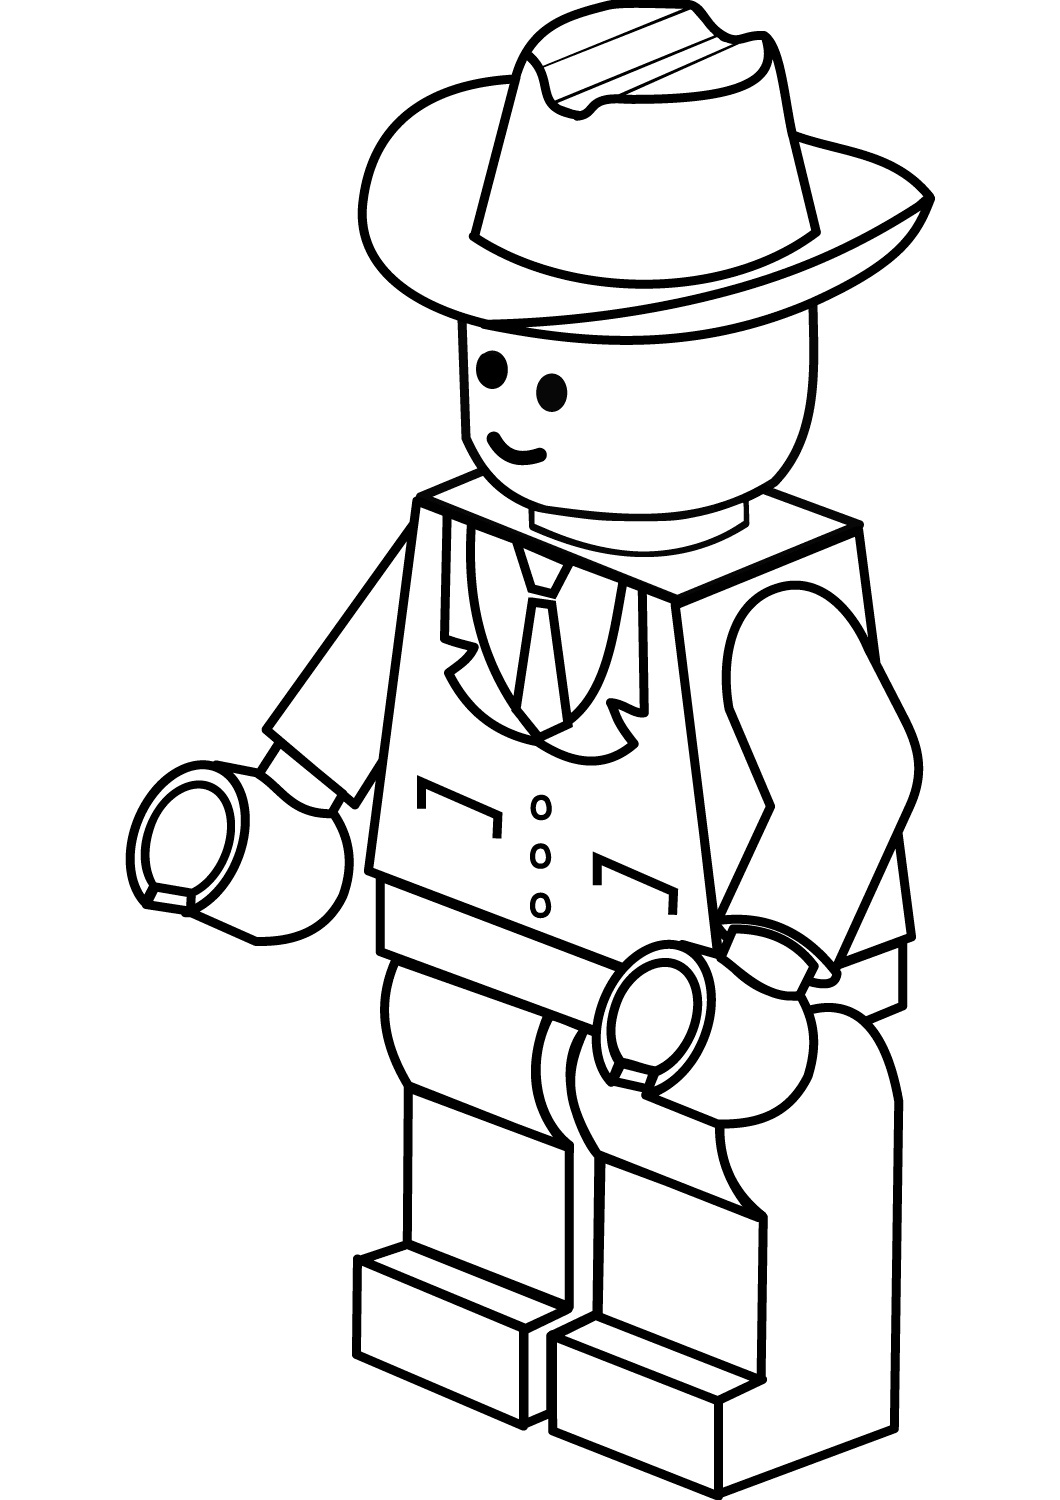 Lego City Cowboy Hat